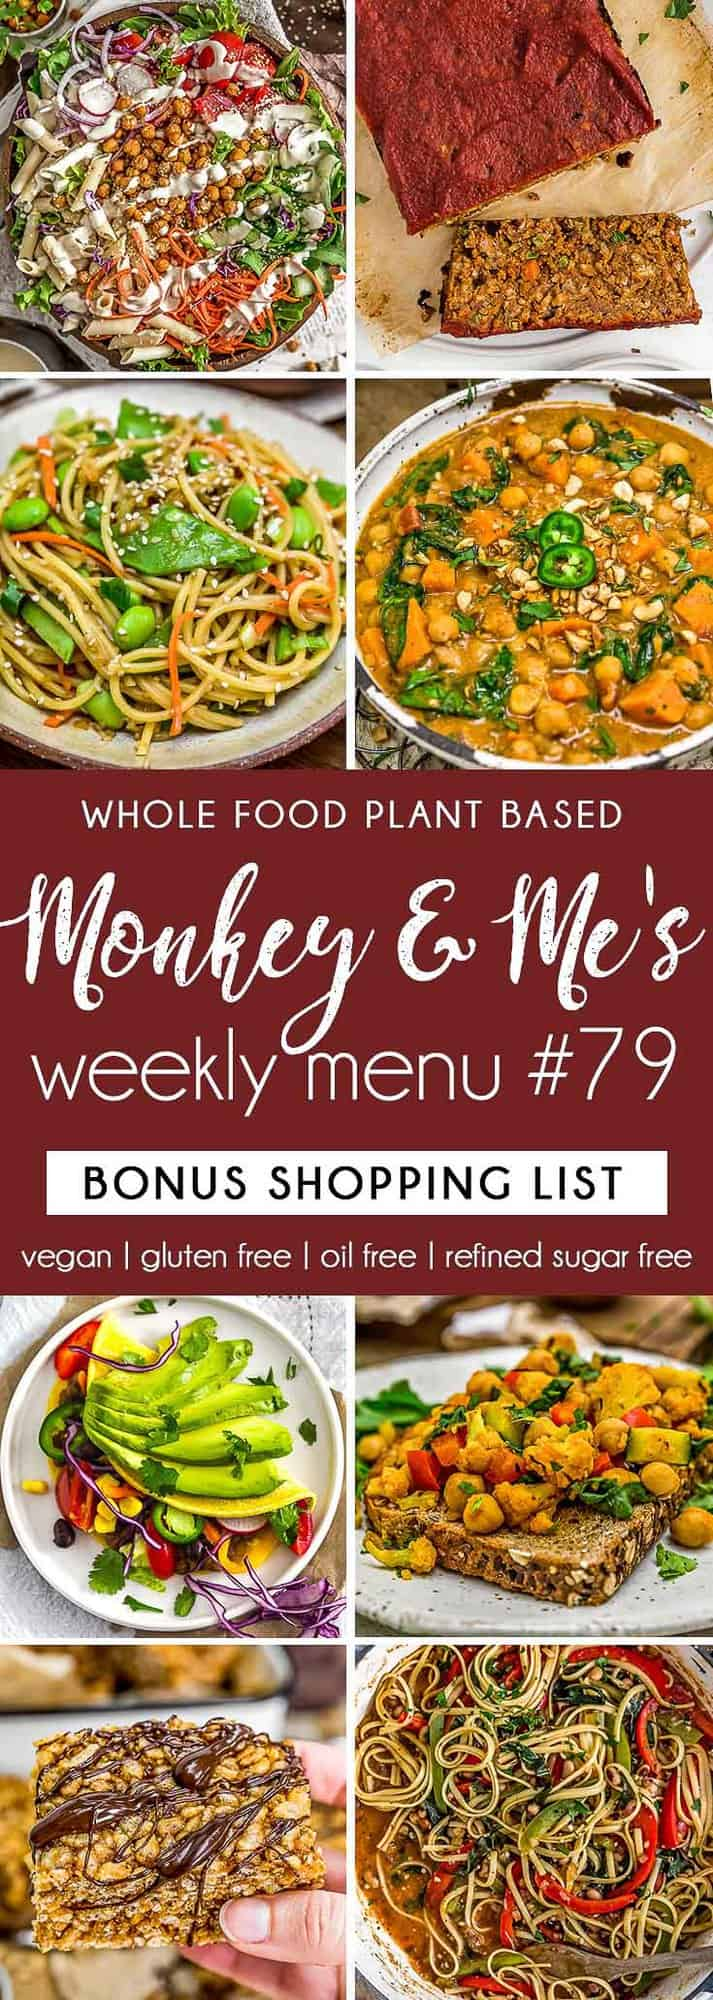 Monkey and Me's Menu 79 featuring 8 recipes